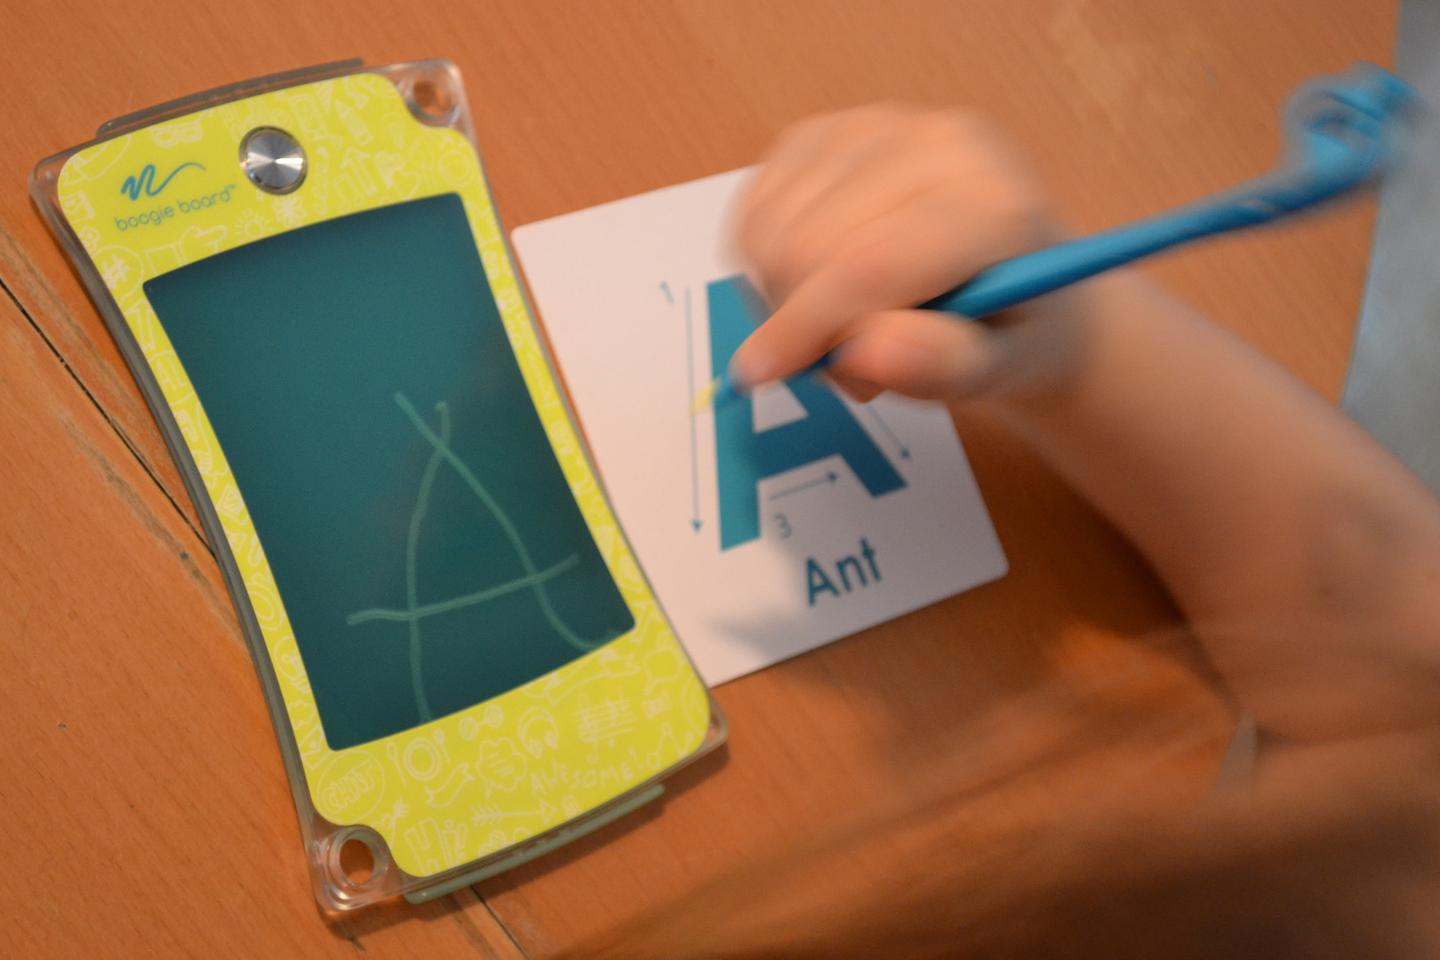 The new Boogie Board Jot 4.5 features atranslucent screen for young learners